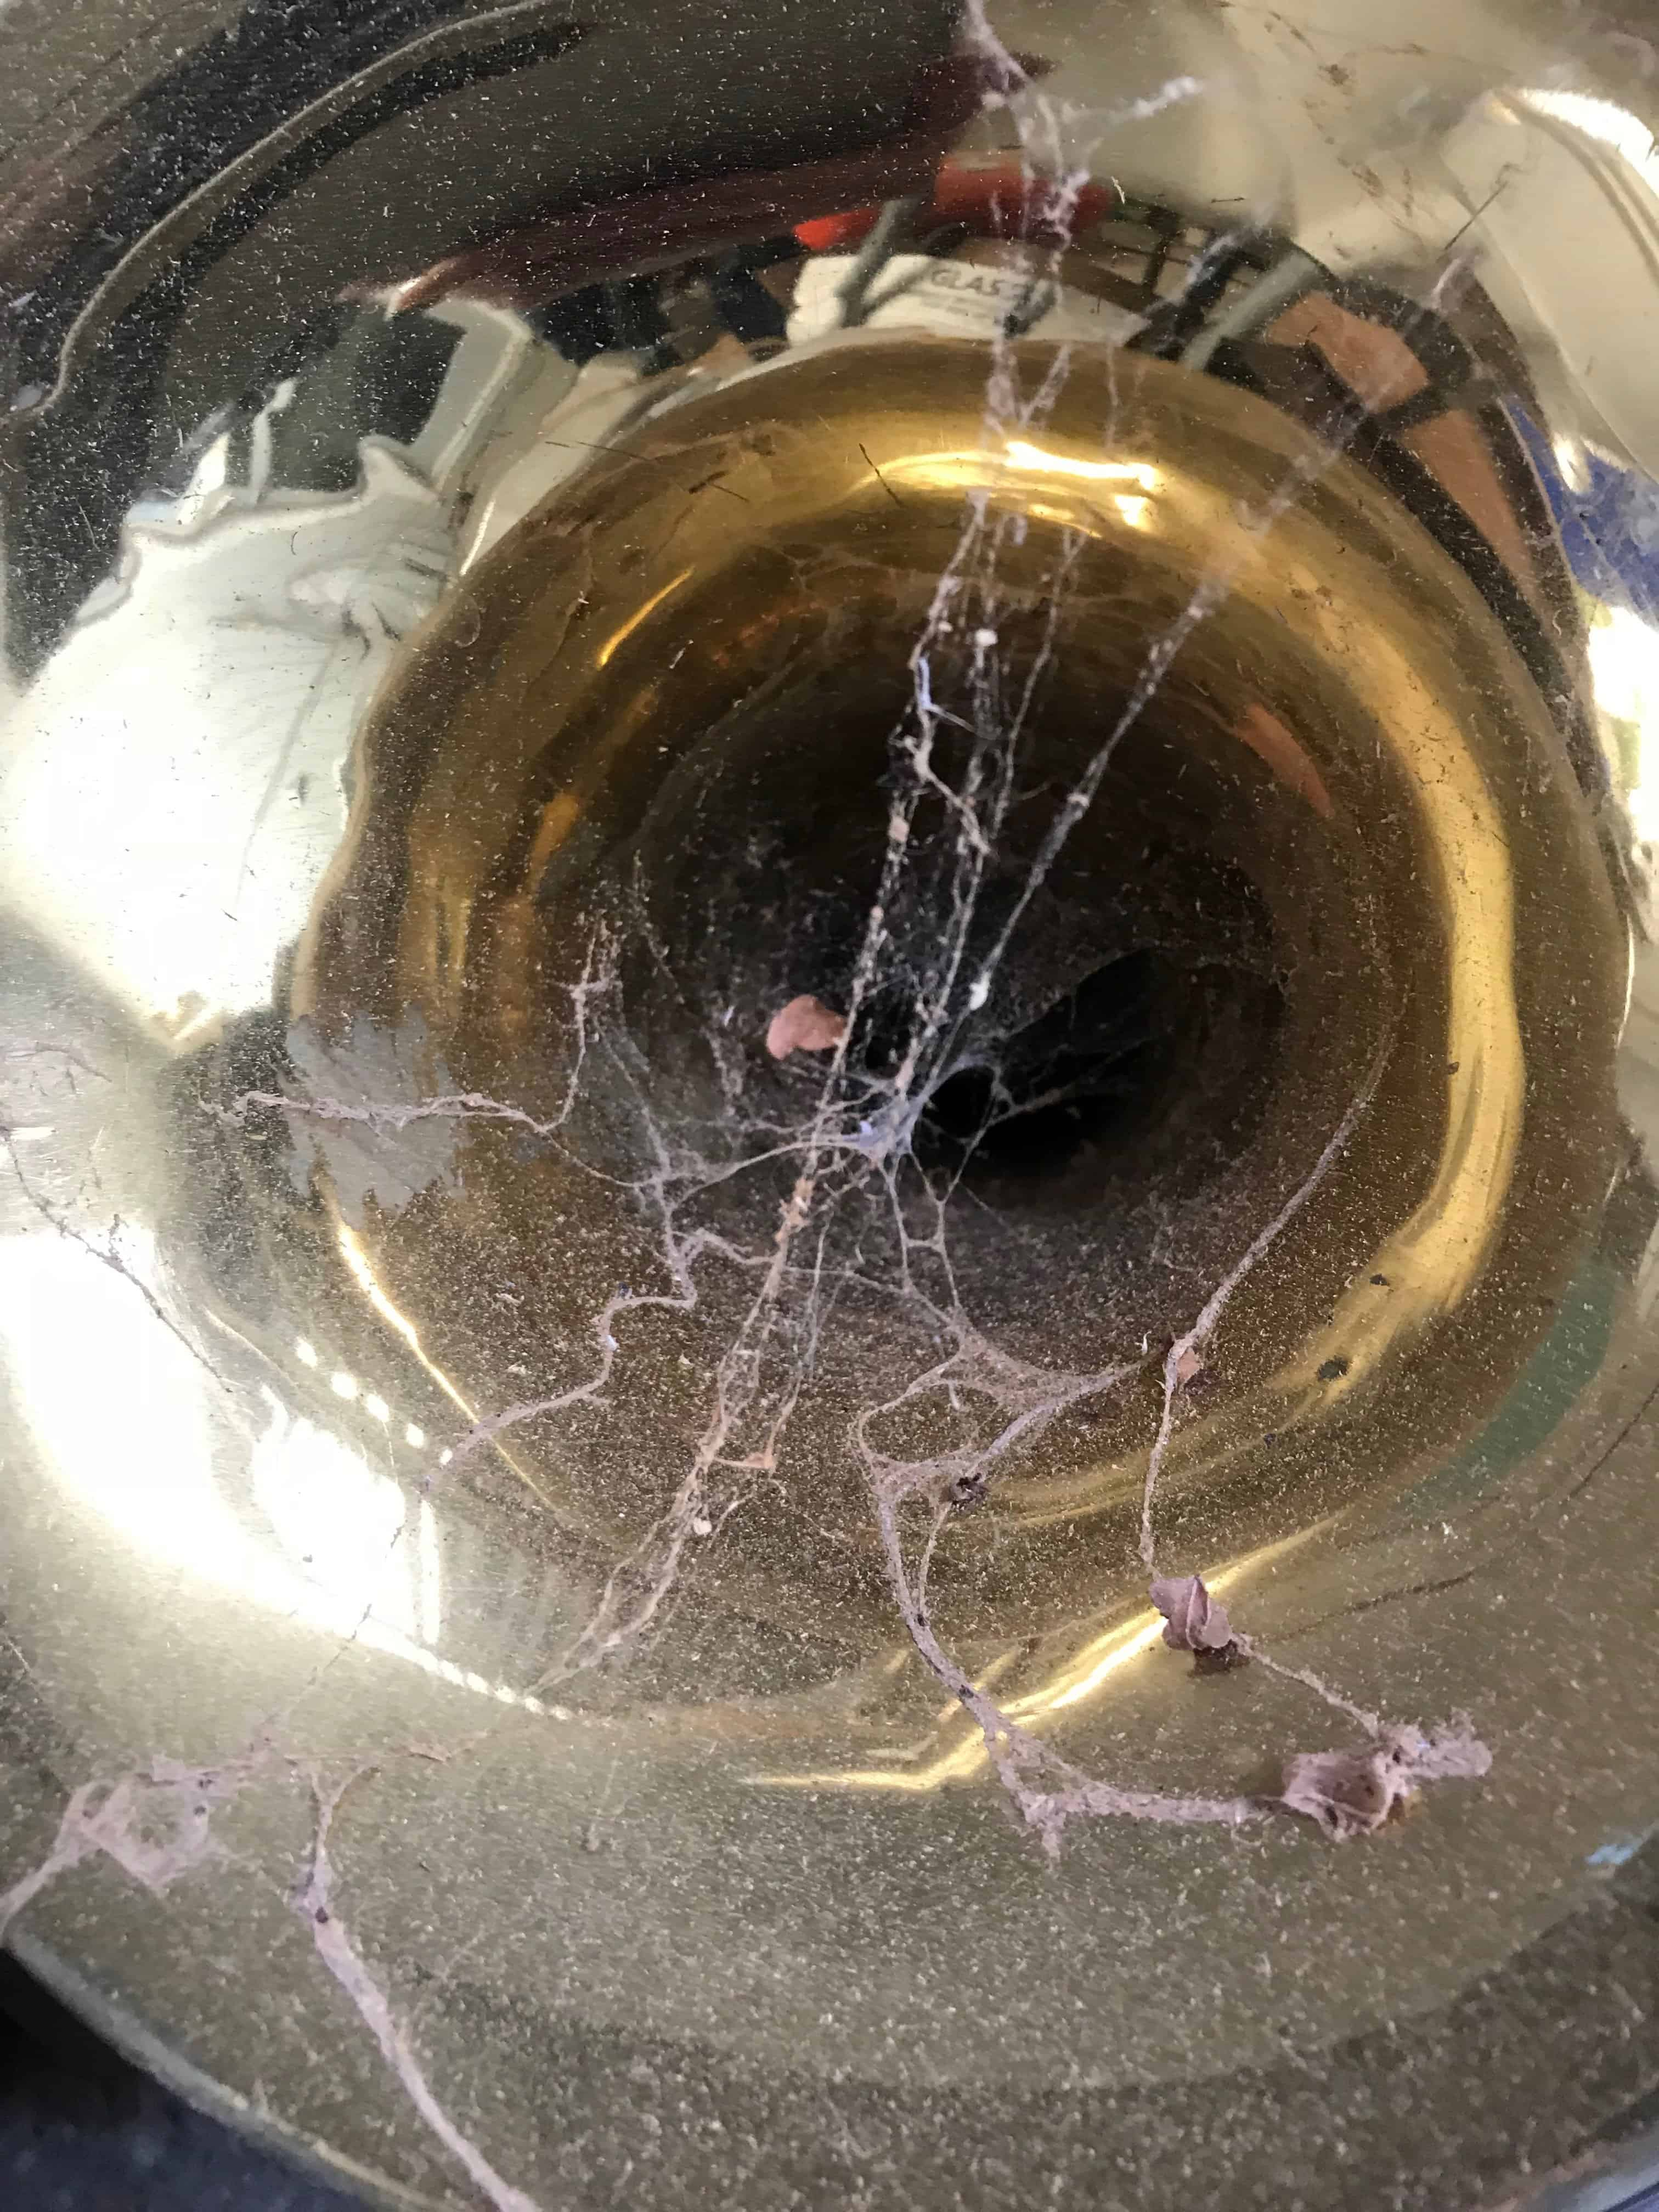 Dusty Trumpet - How to Clean a Trumpet